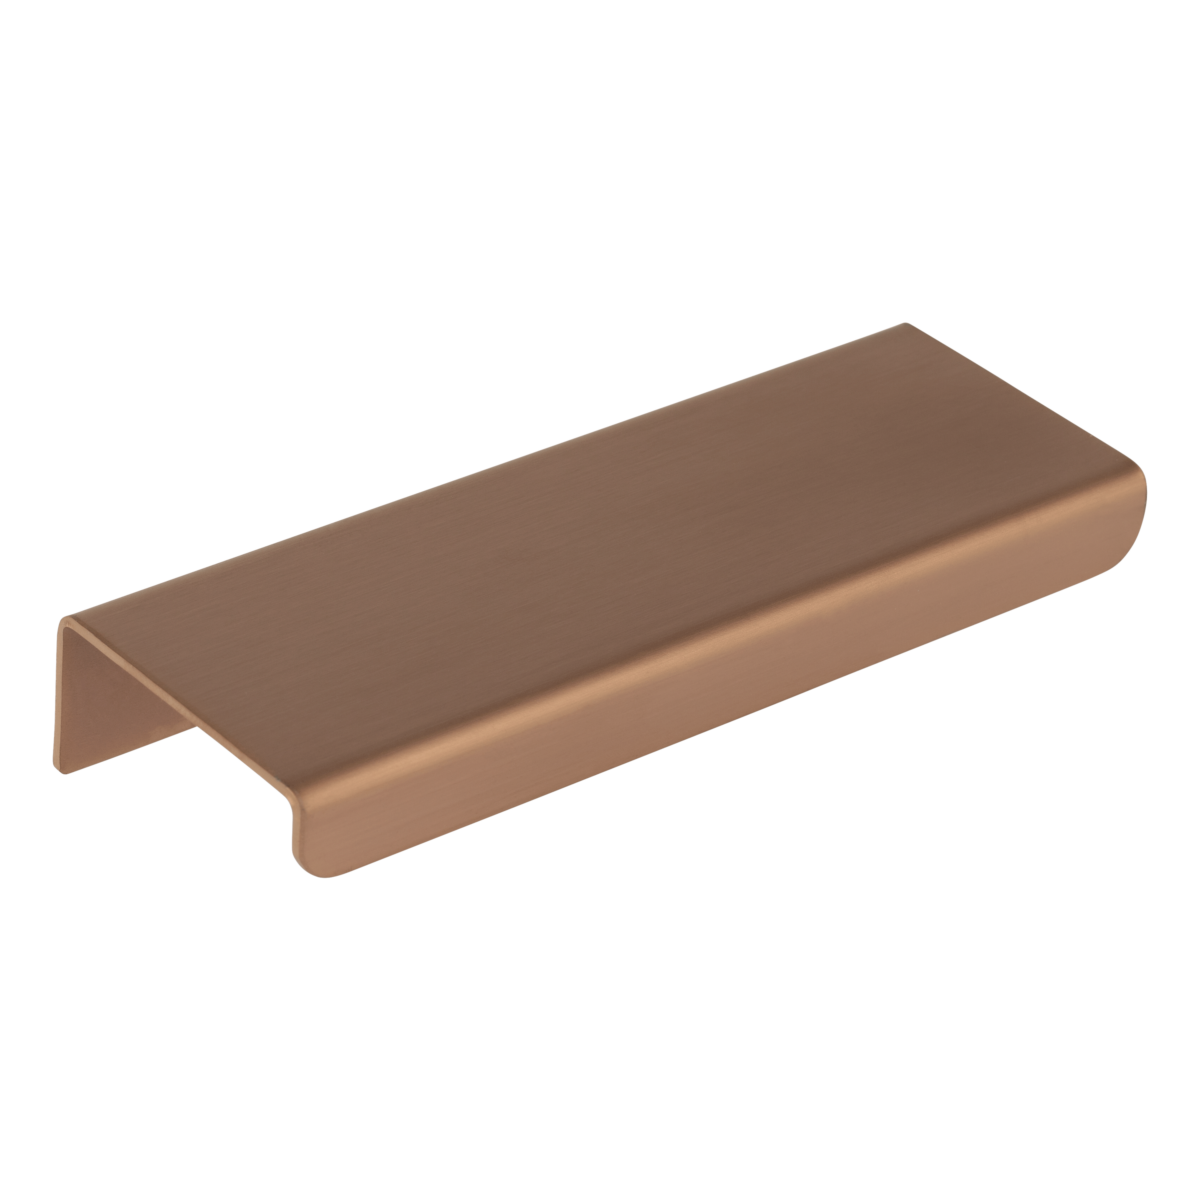 Rappana Cabinetry Pull Extended 100mm – Brushed Copper